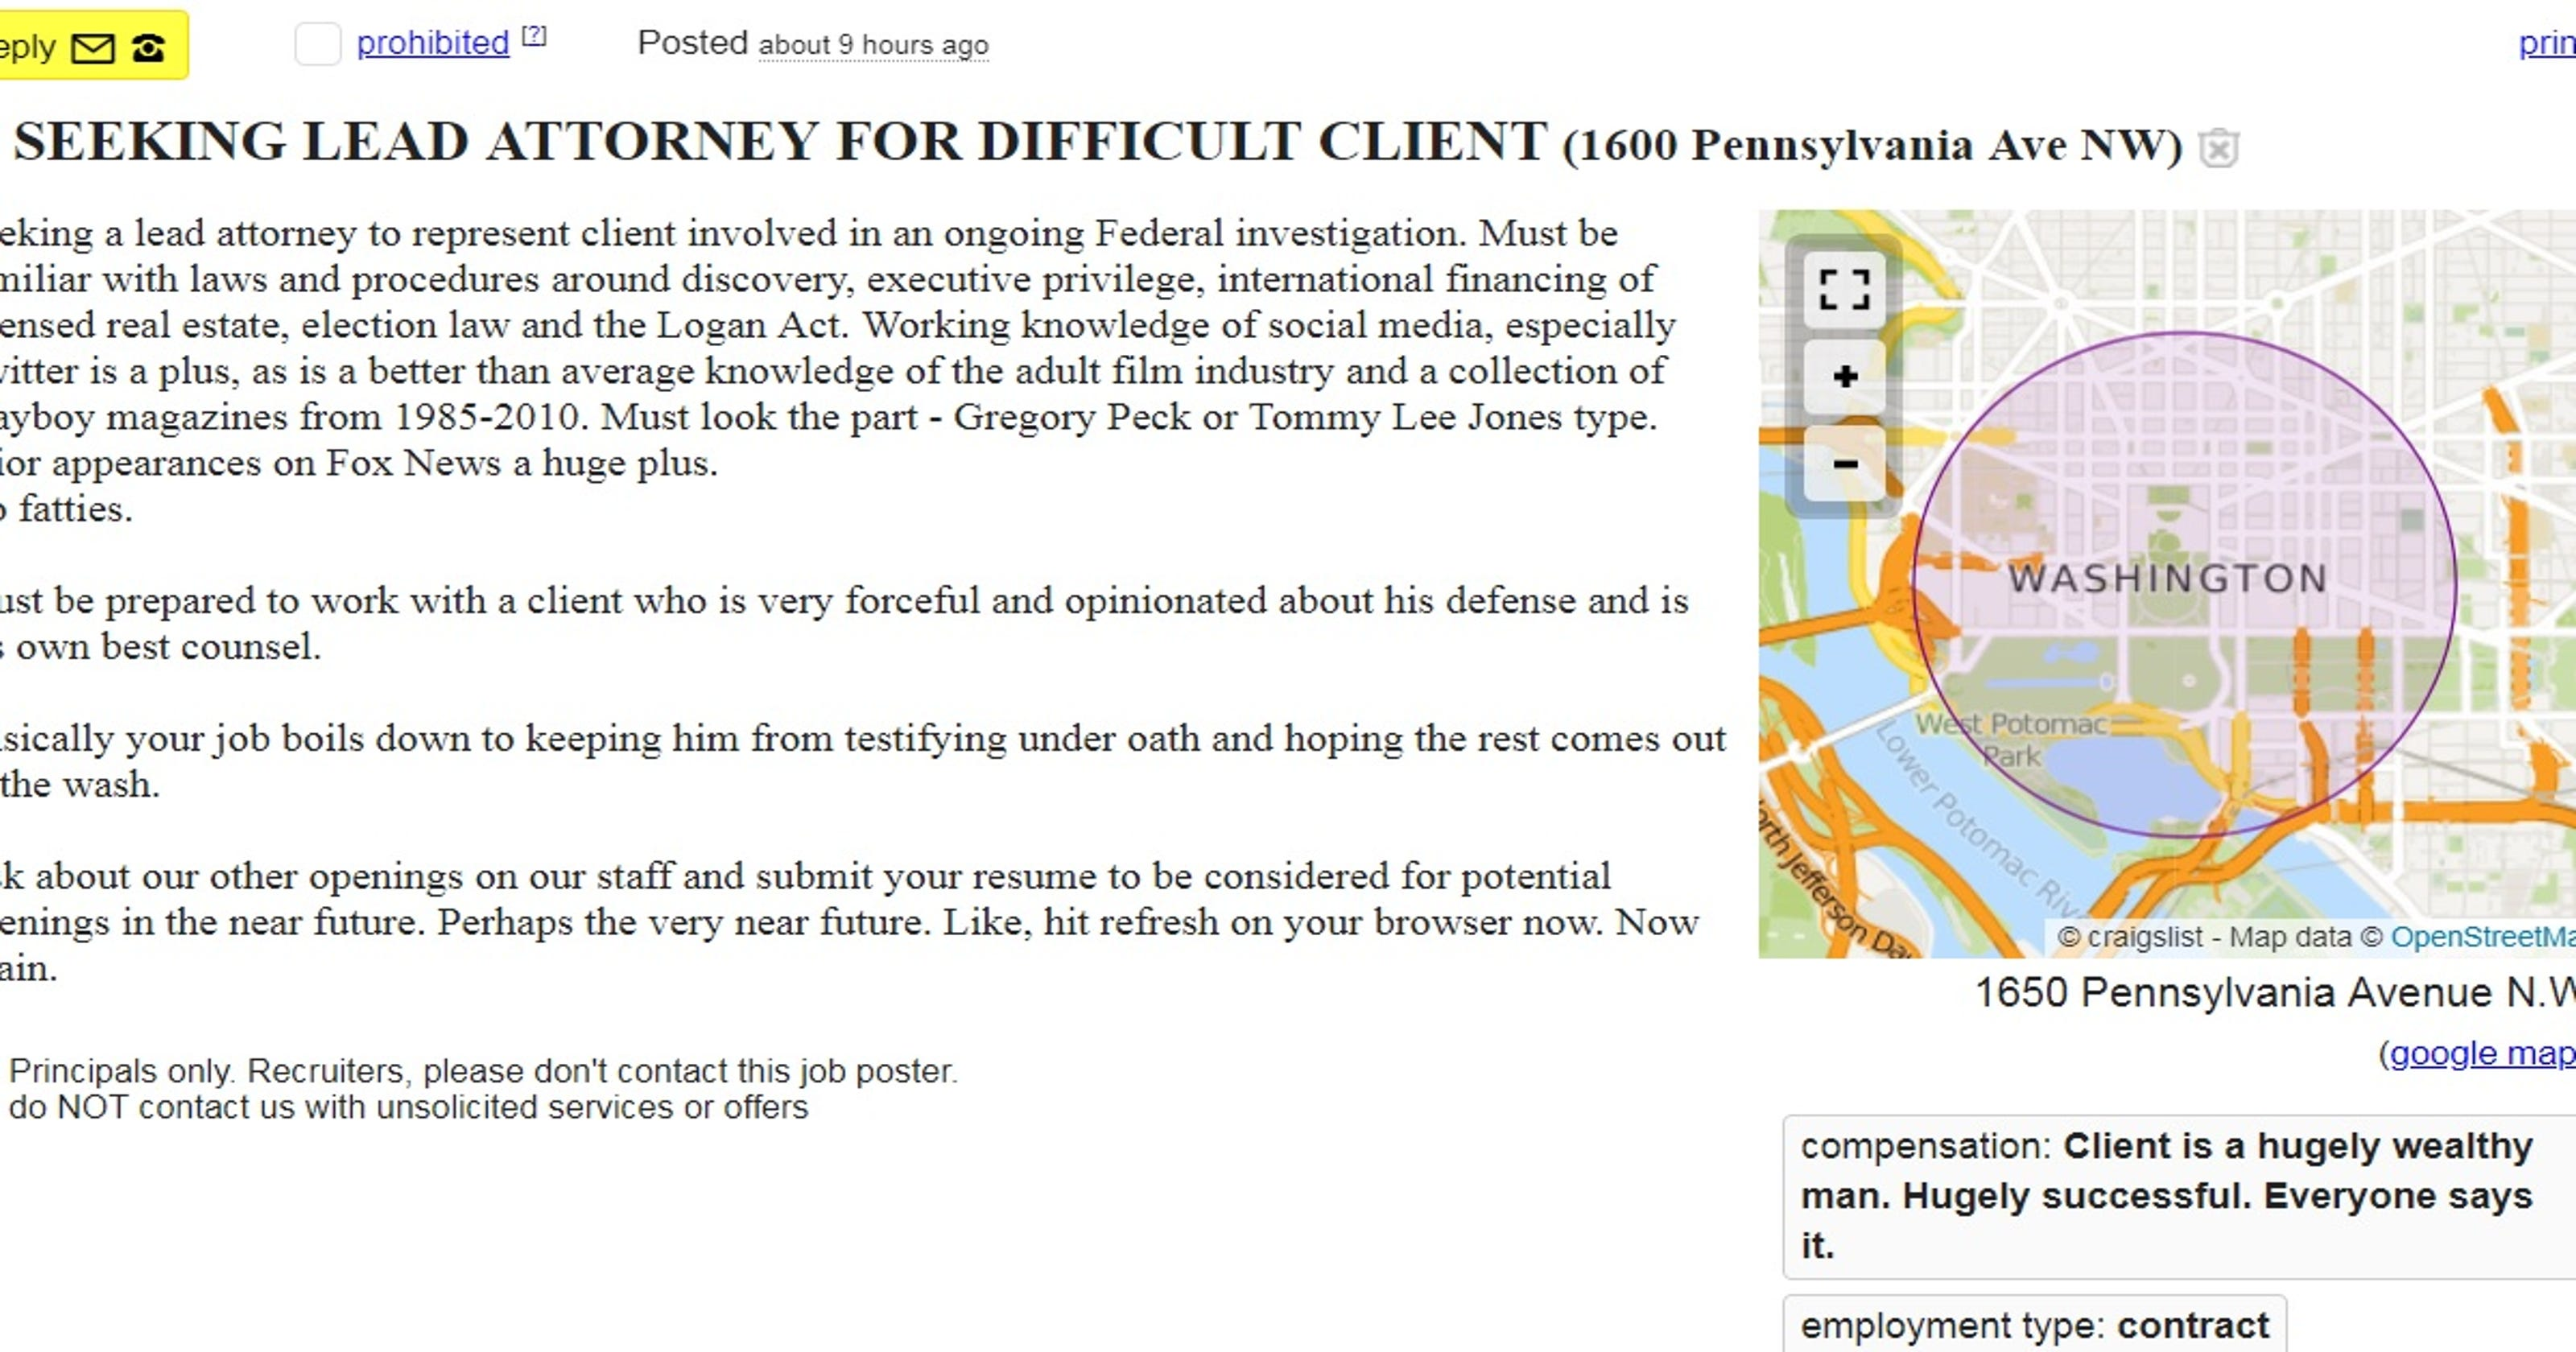 craigslist ad seeking lead attorney for difficult client